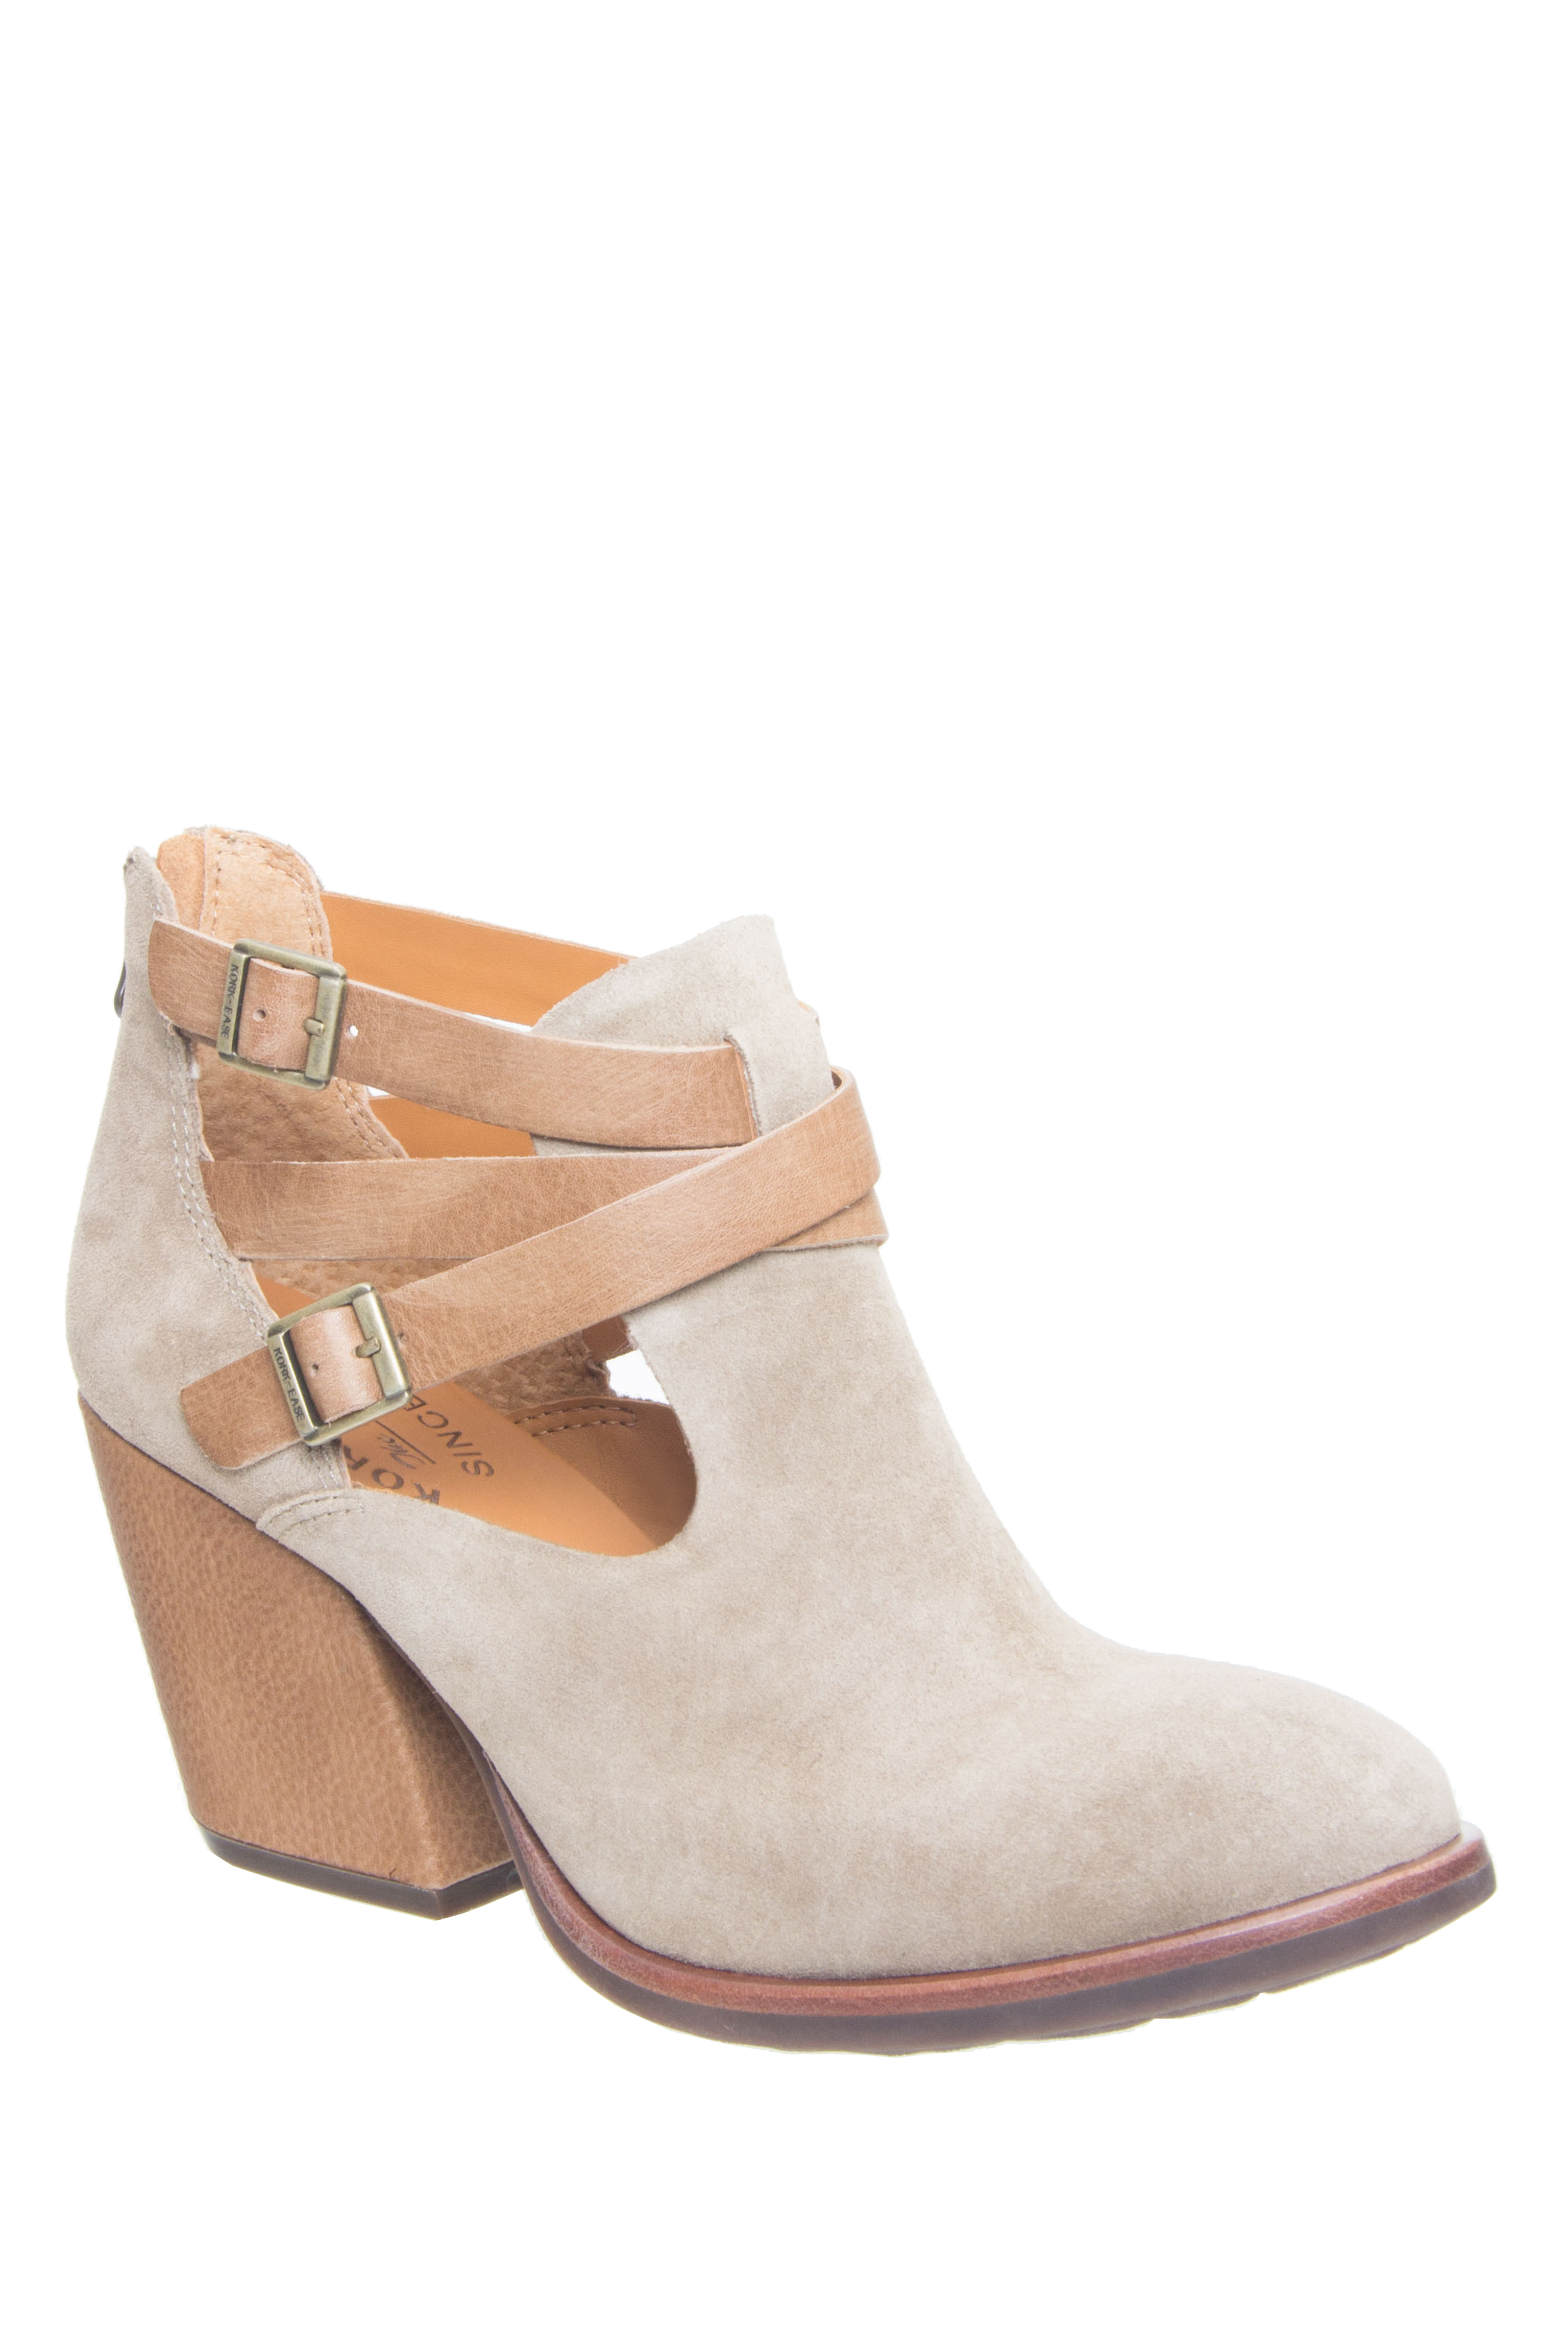 Kork-Ease Stina High Heel Booties - Taupe / Marmotta / Bison Combo